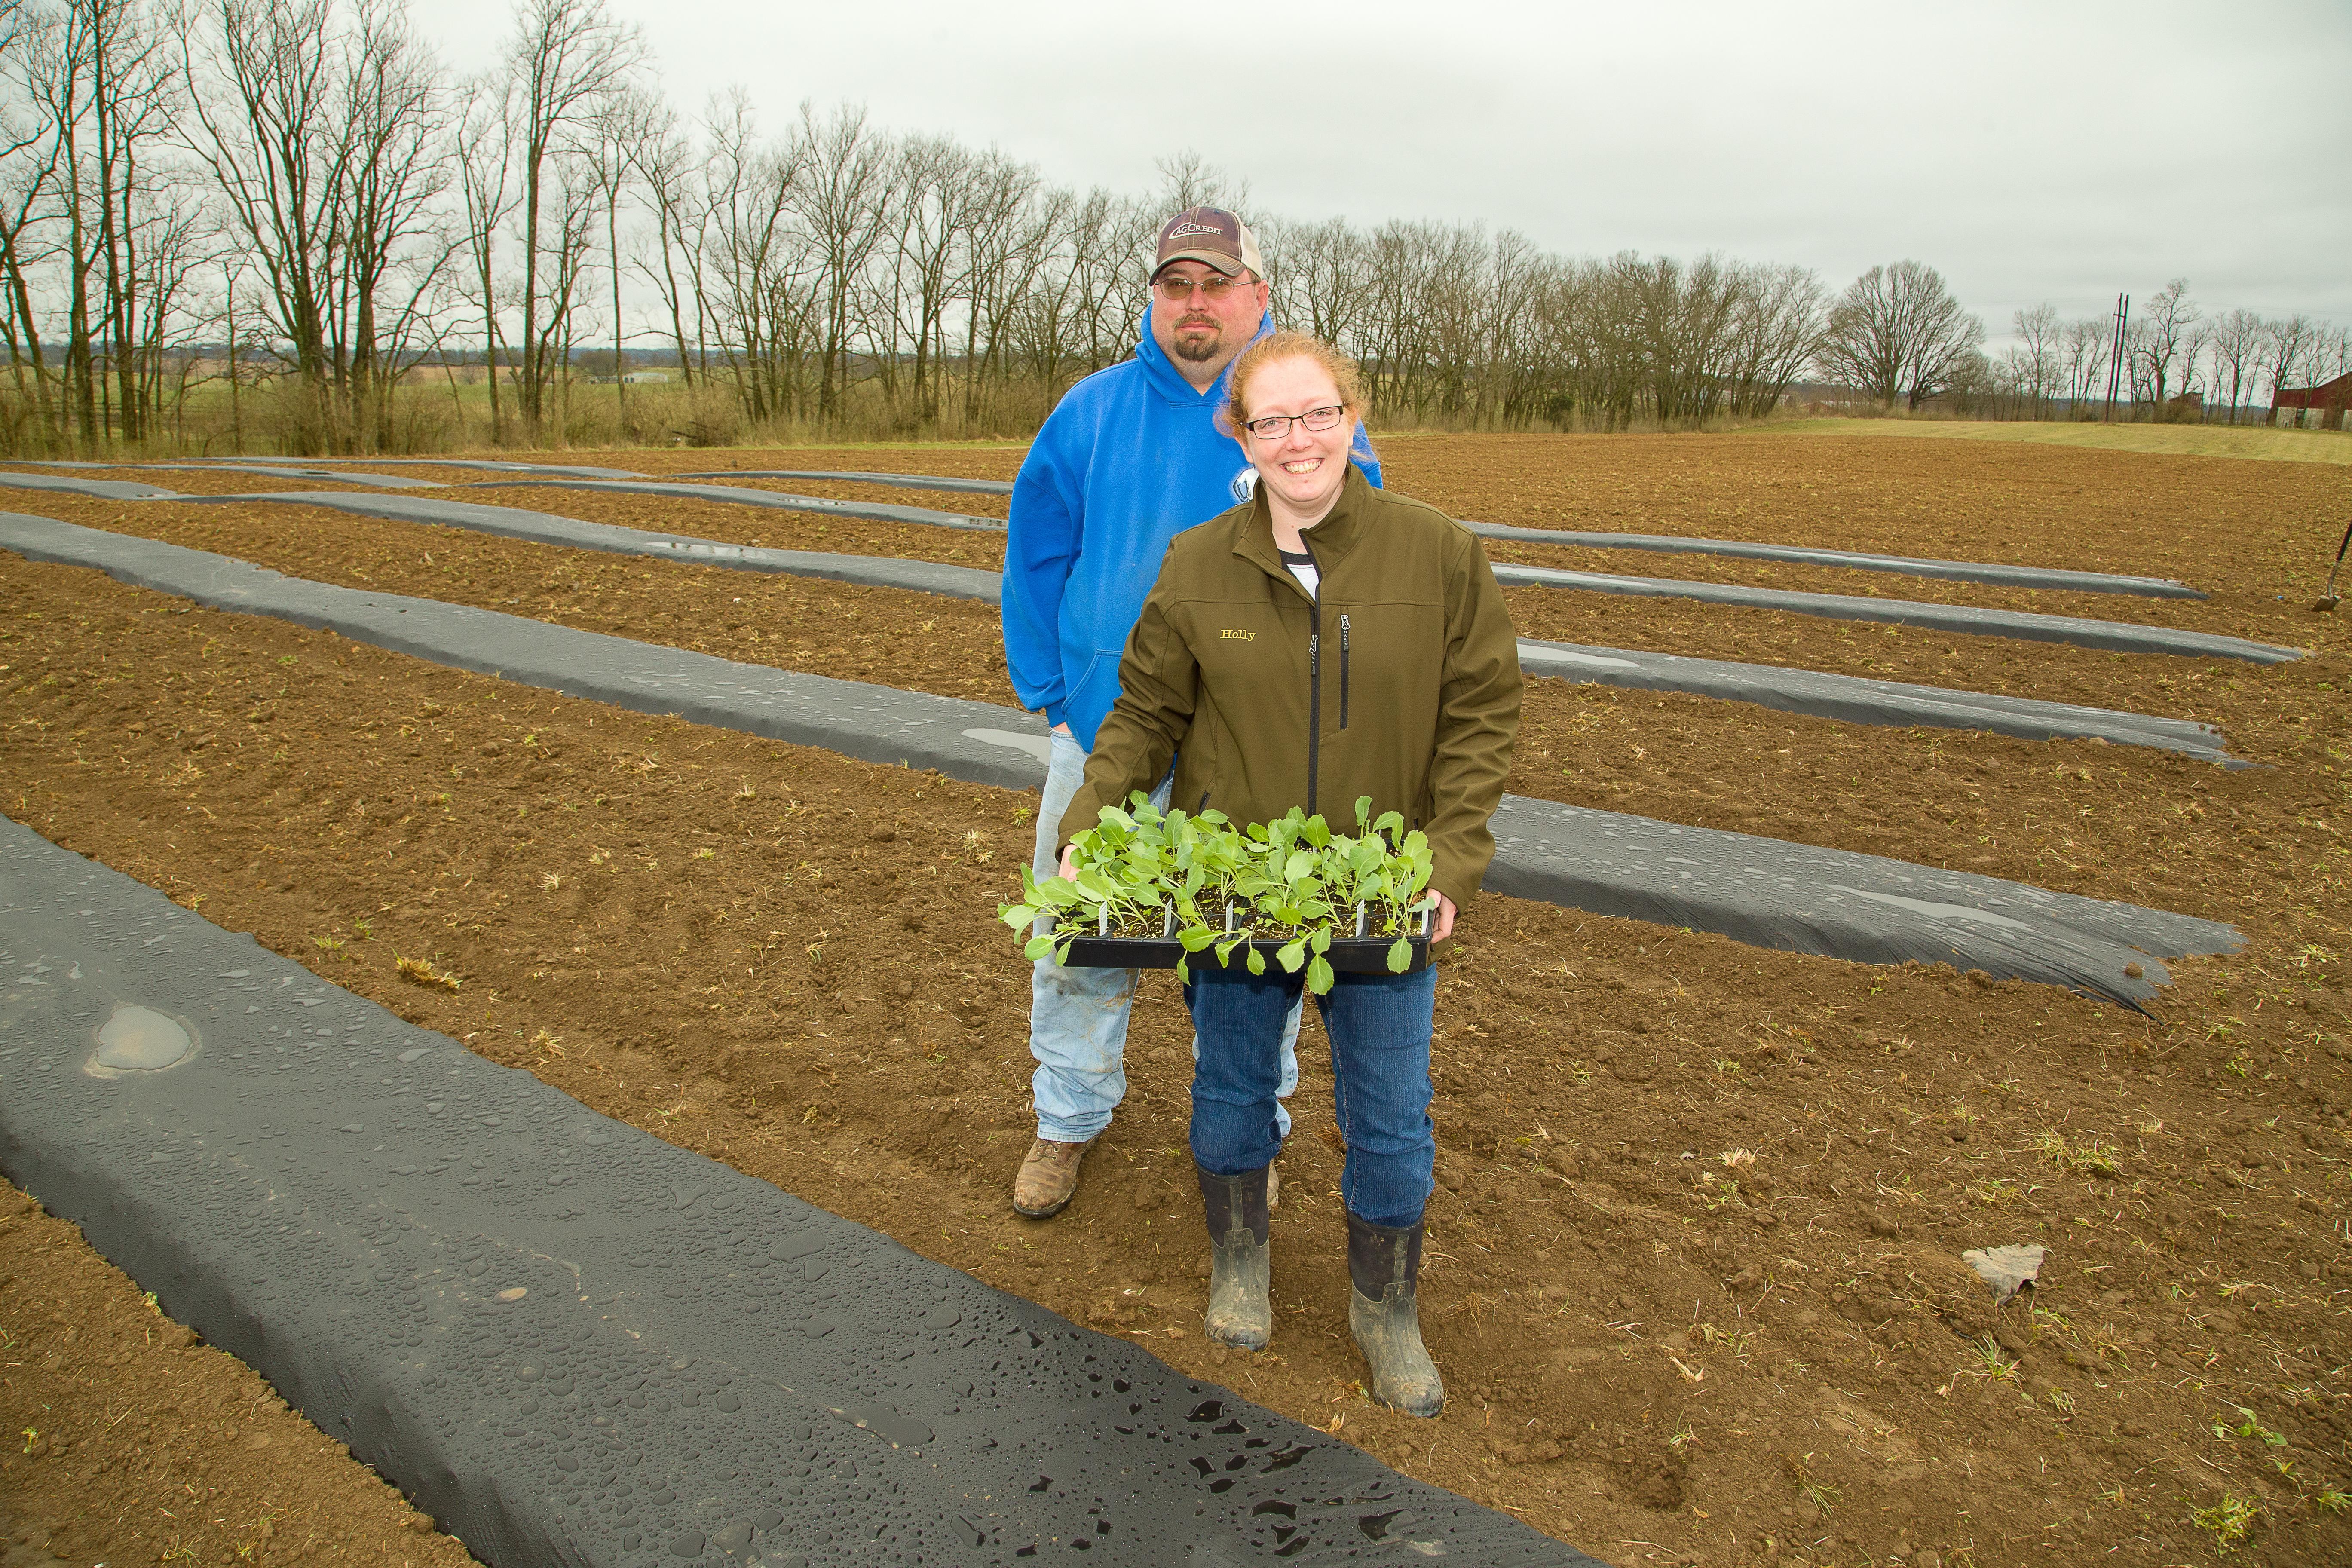 Larry and Holly Laytart, S & L Farms, Cynthiana